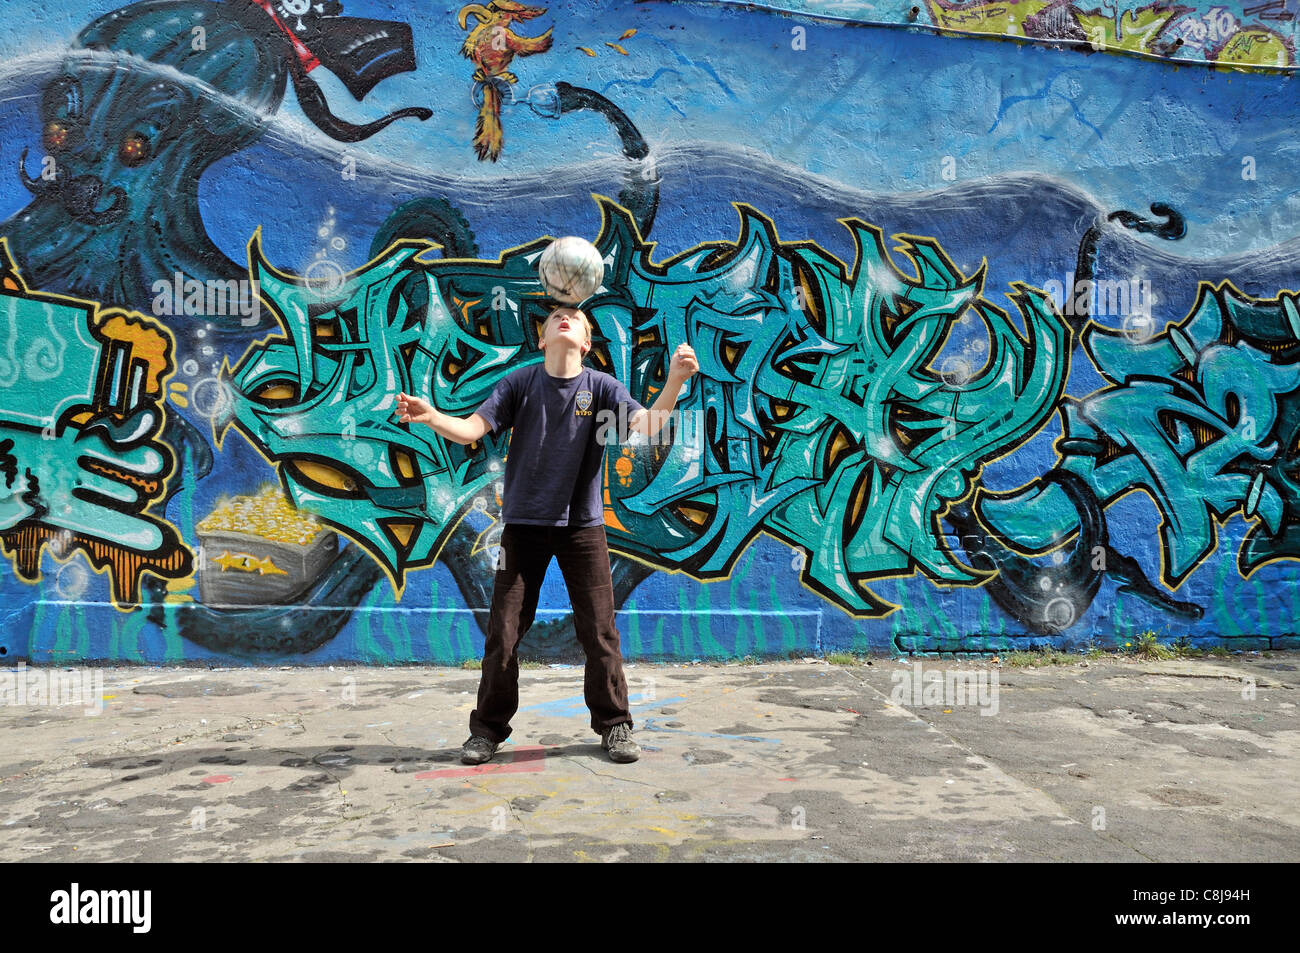 Stock photo alone balance balance ball germany one europe football soccer graffiti graffiti wall boy child head training more